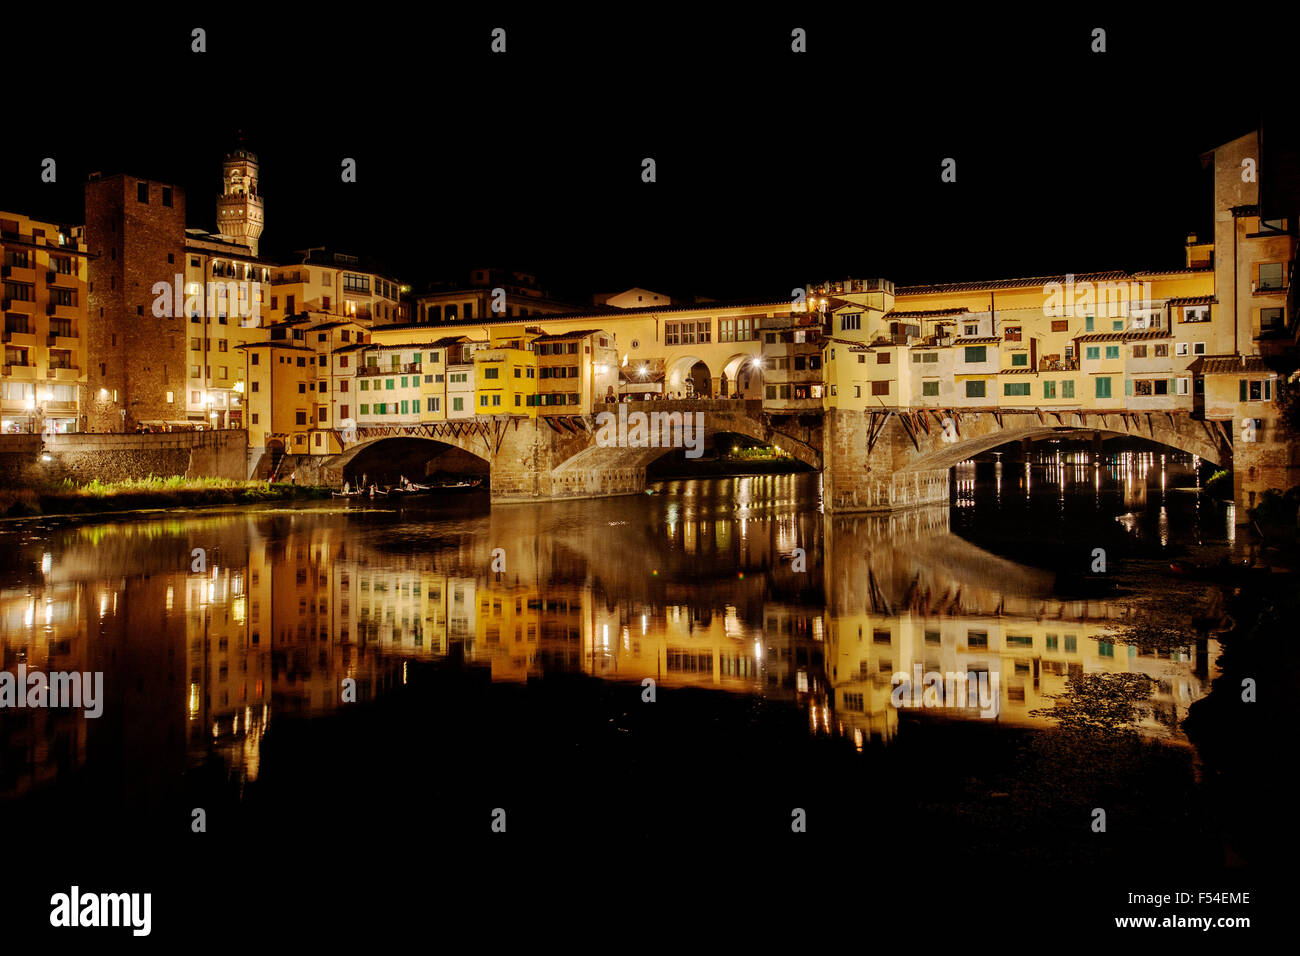 Ponte Vecchio, Old Bridge, Taddeo Gaddi, over Arno river in Florence  Italy at night - Stock Image